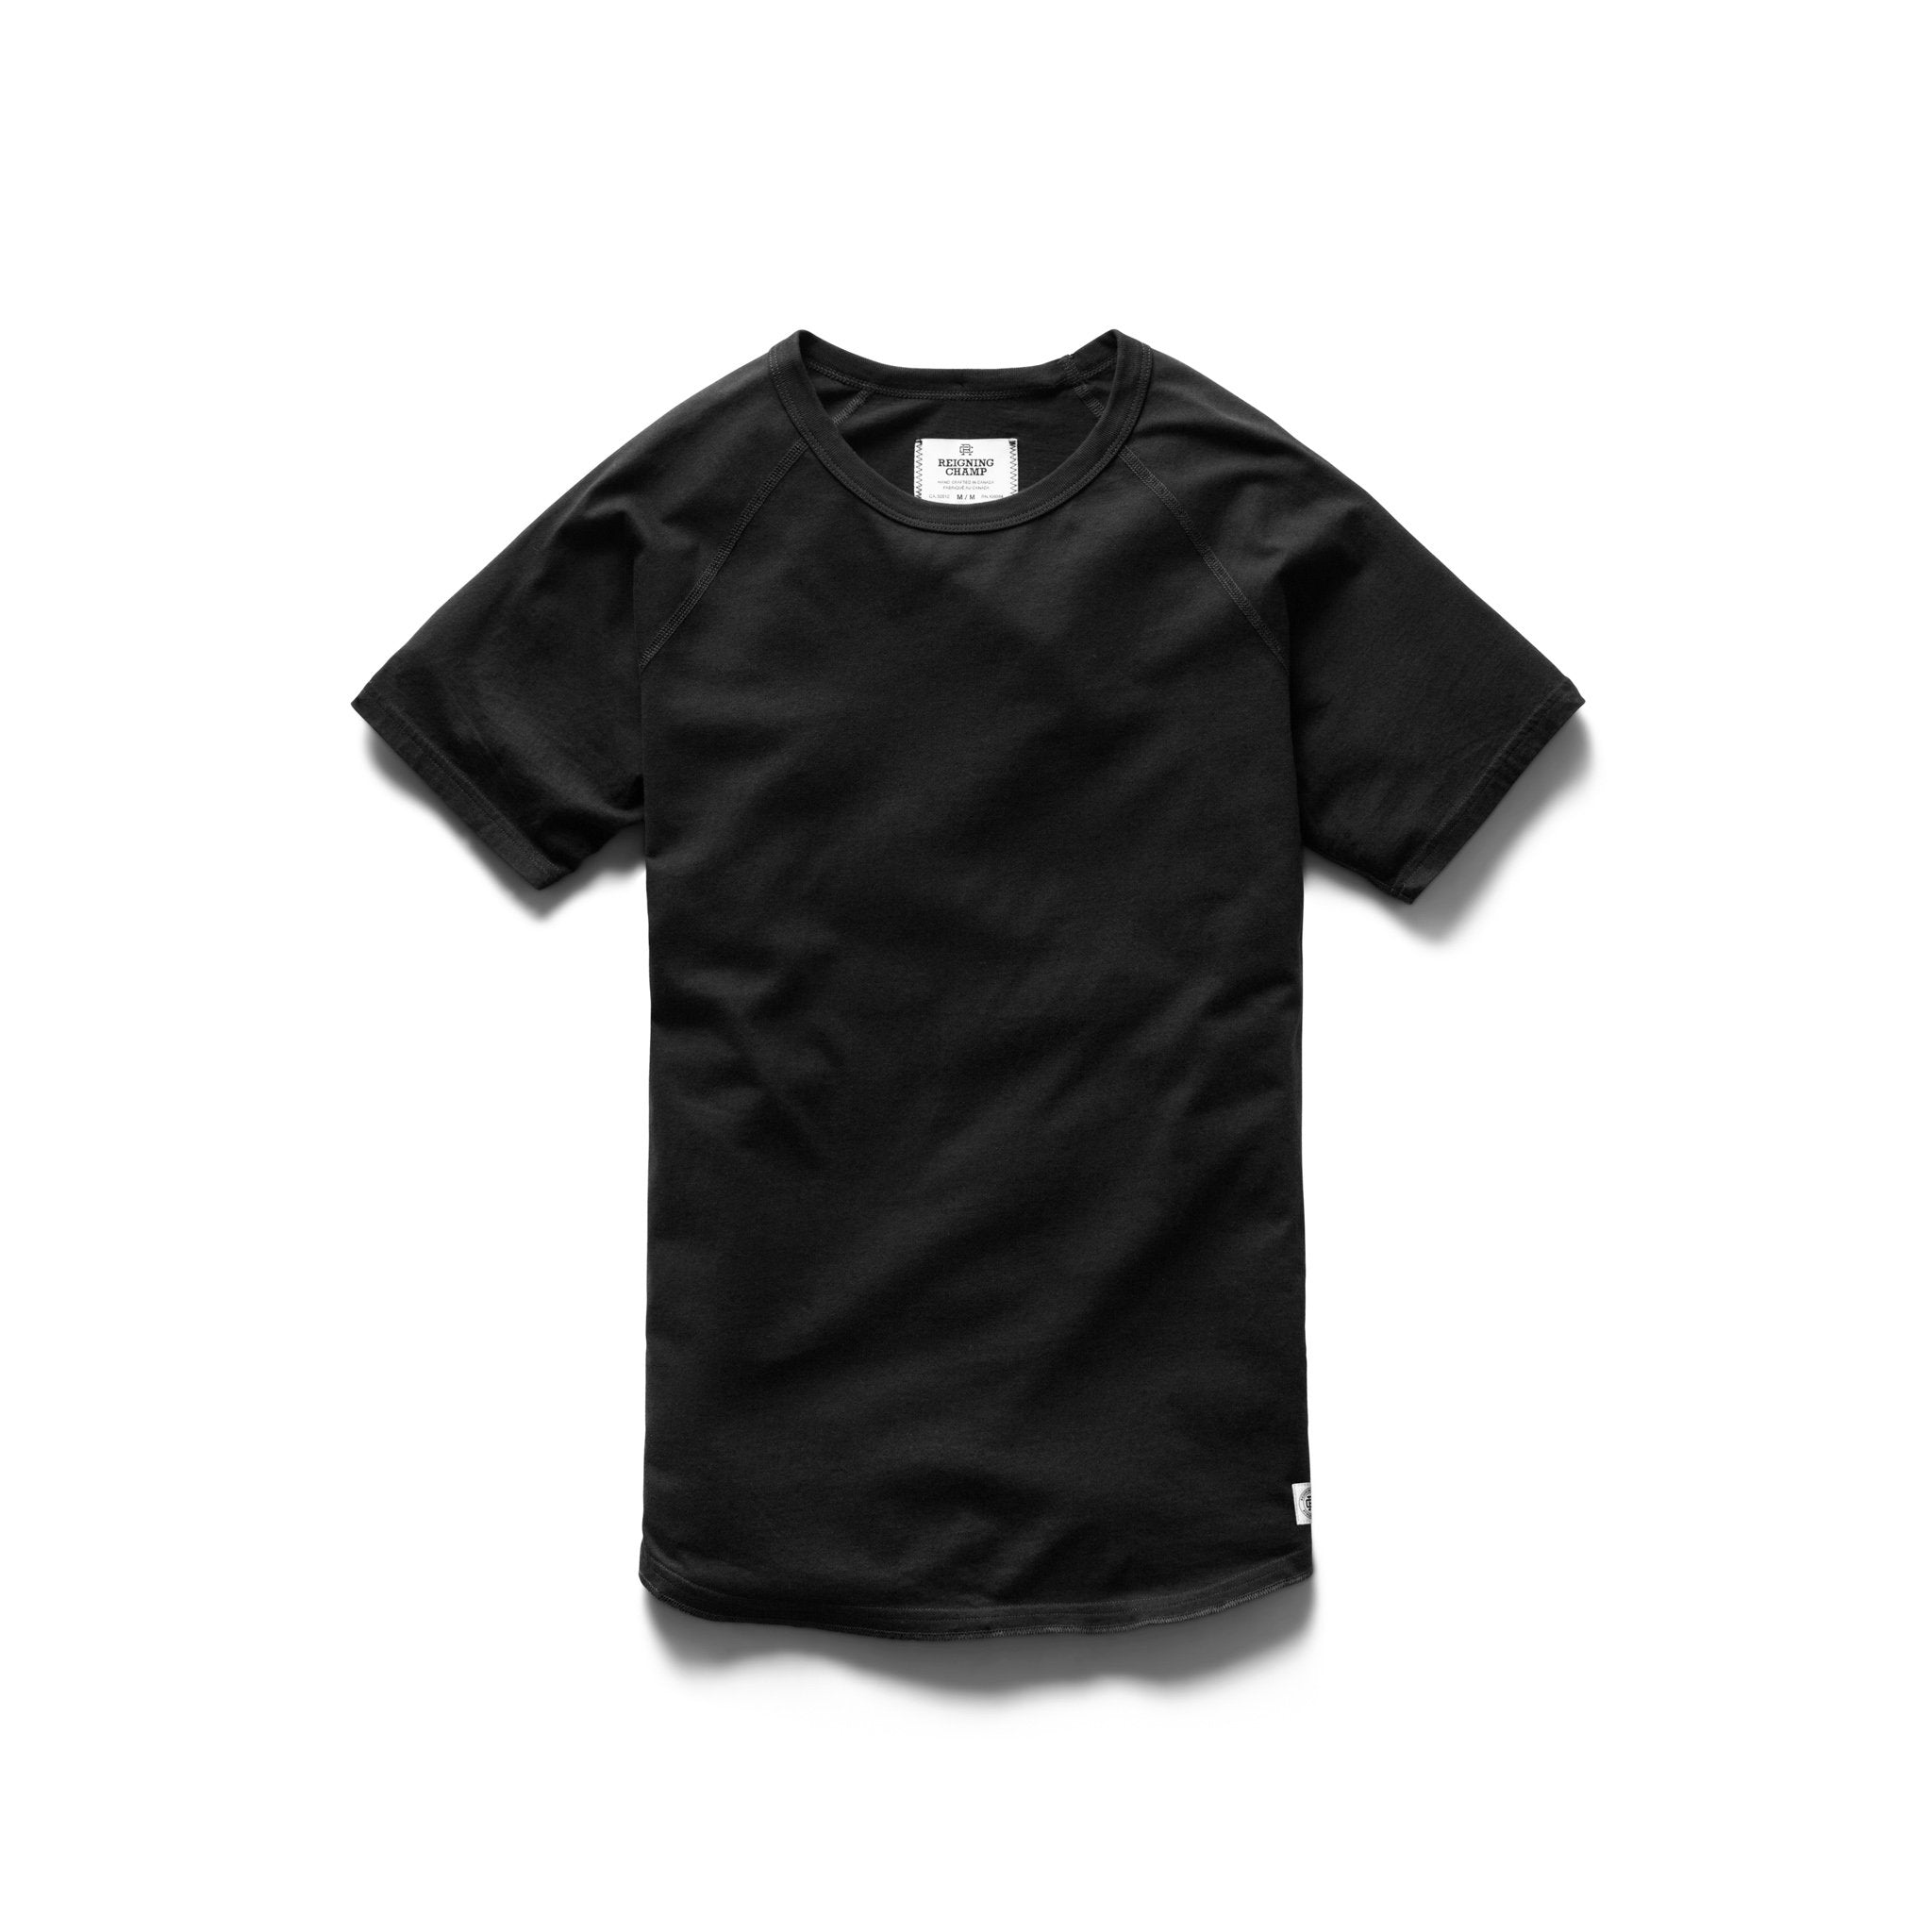 REIGNING CHAMP M'S T-SHIRTS BLACK XL RAGLAN T-SHIRT